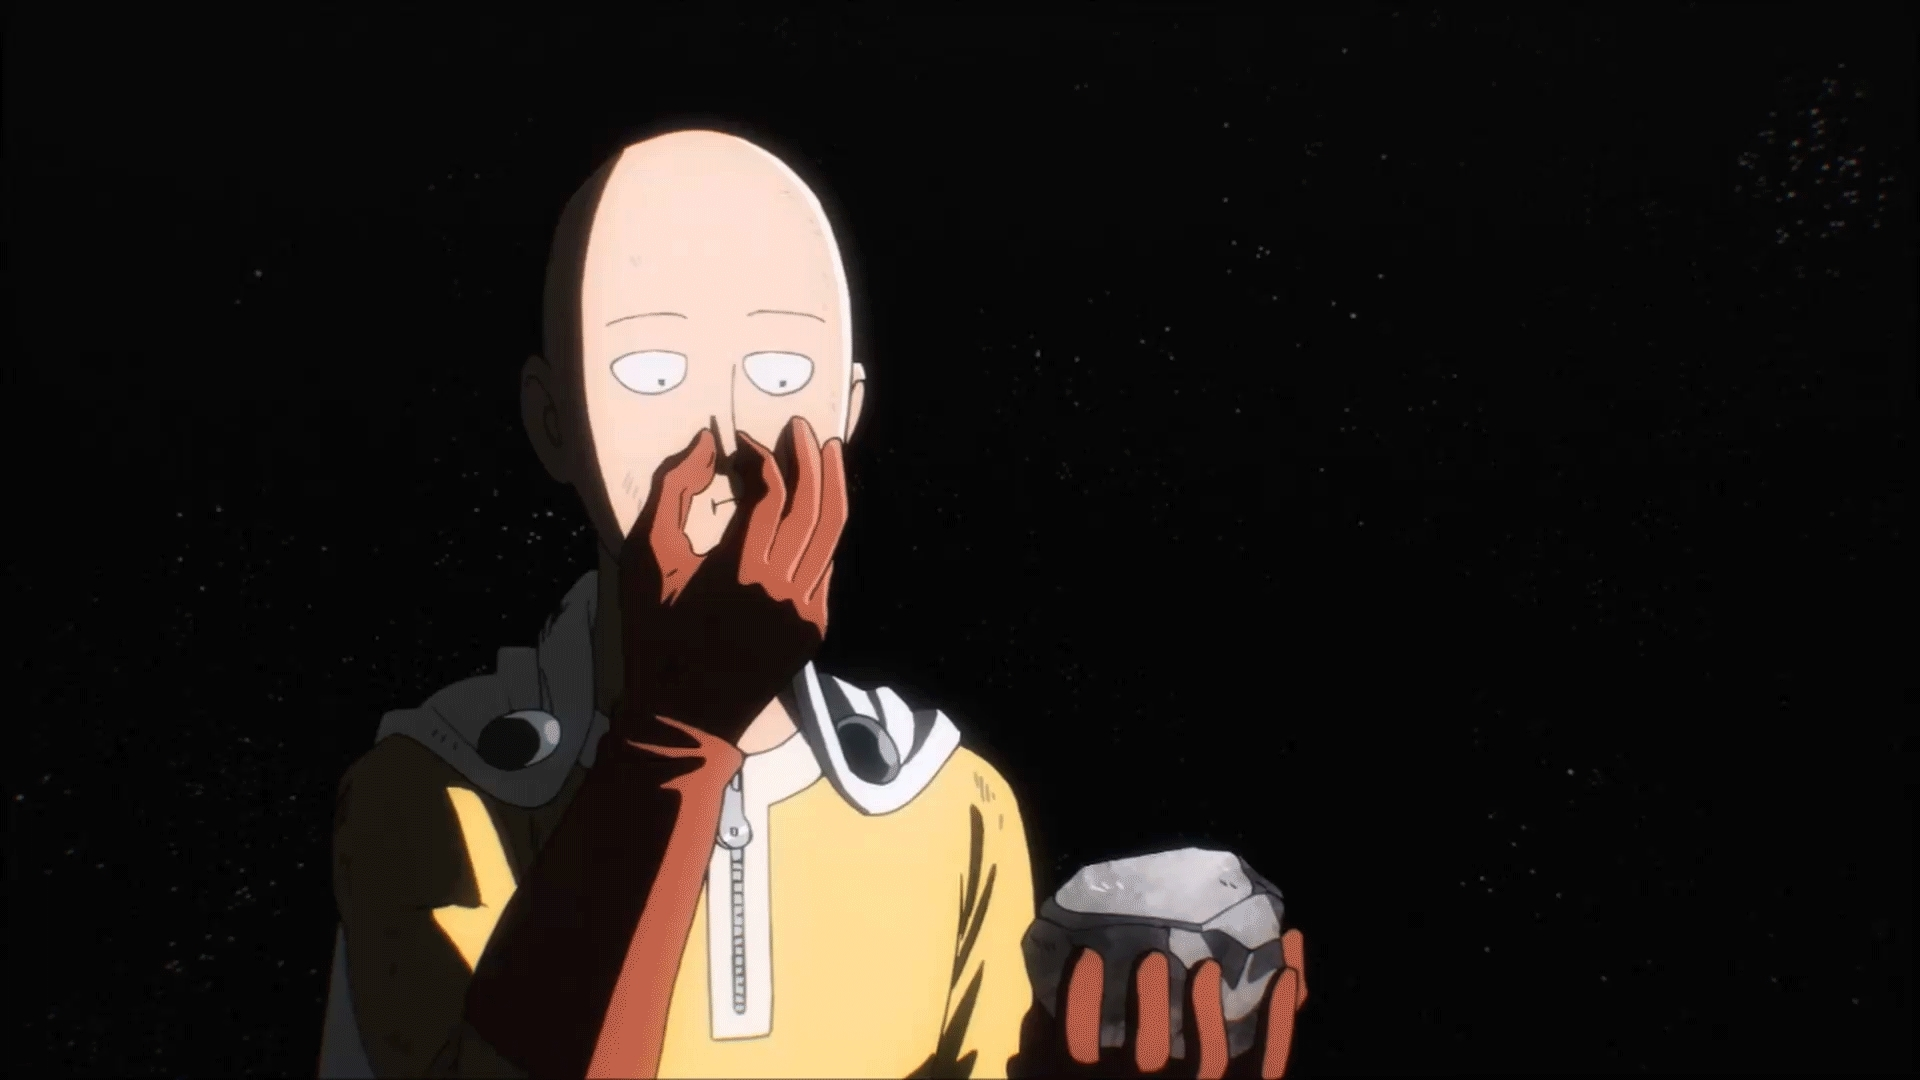 onepunchman, Just contemplating a few things... GIFs